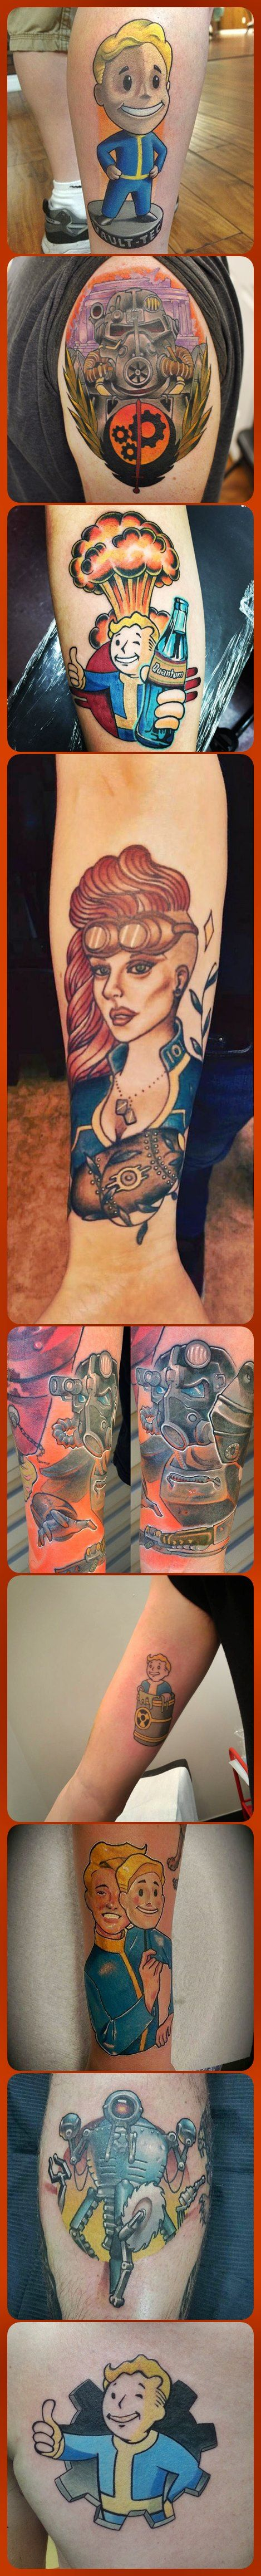 23 Best Fallout 4 Tattoo Ideas That You Can Share With Your